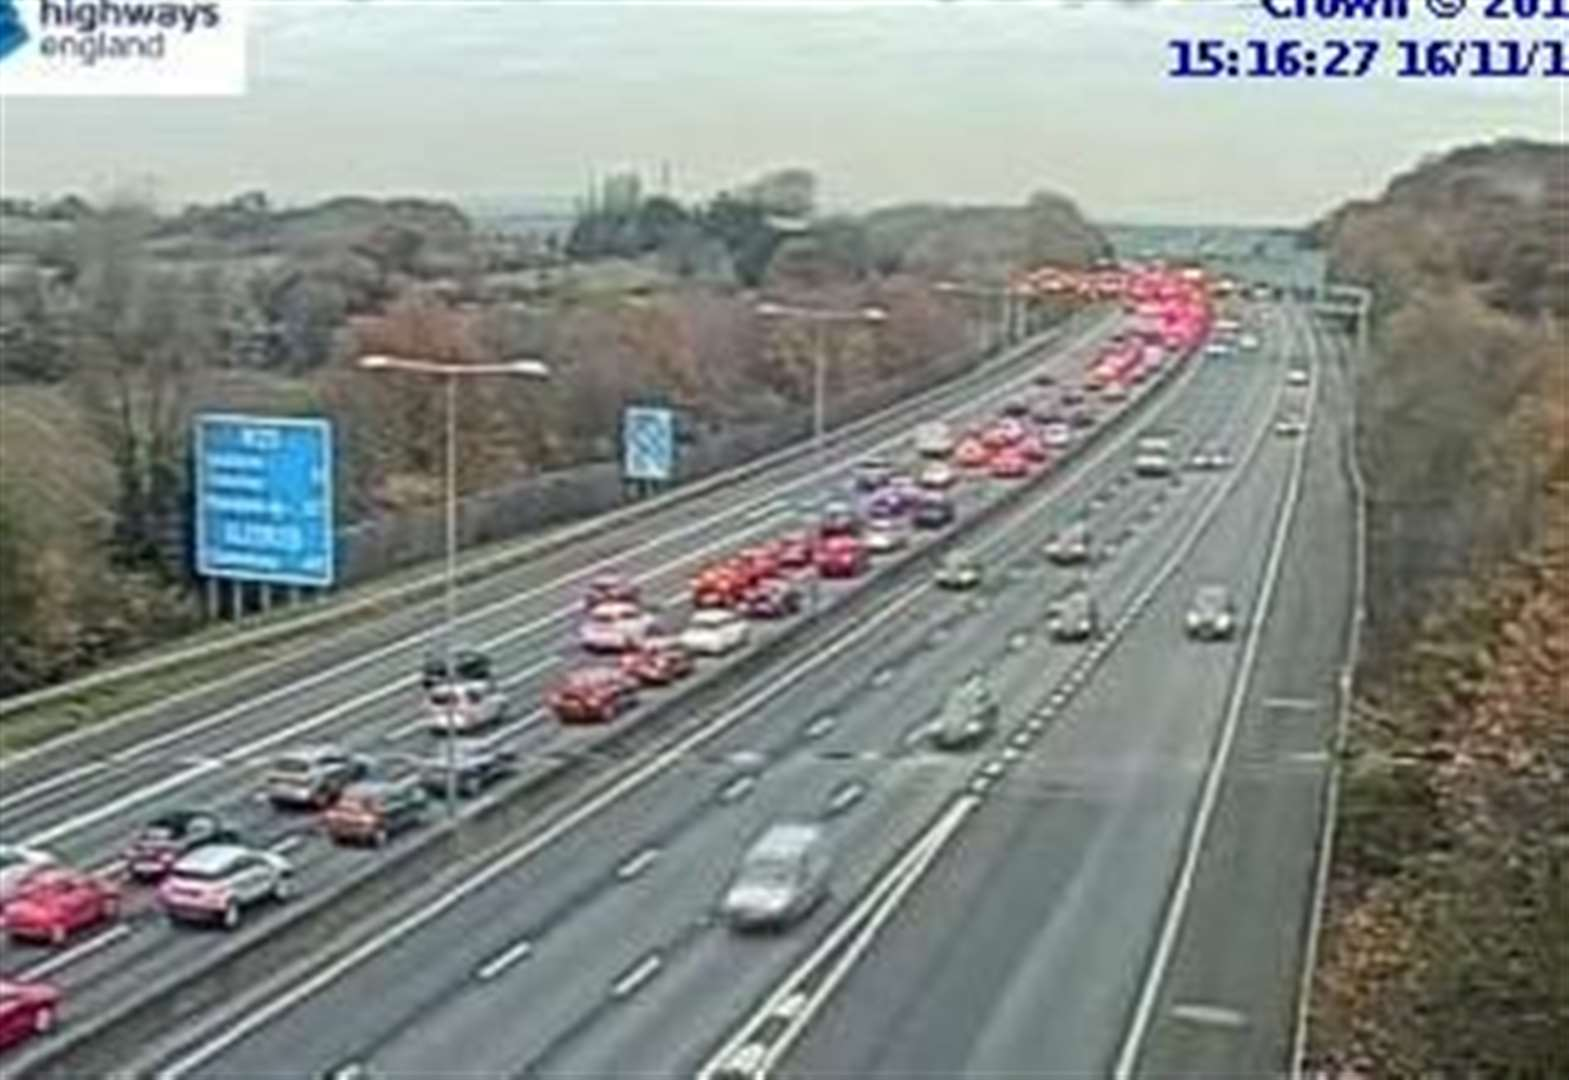 Delays on M25 after crash